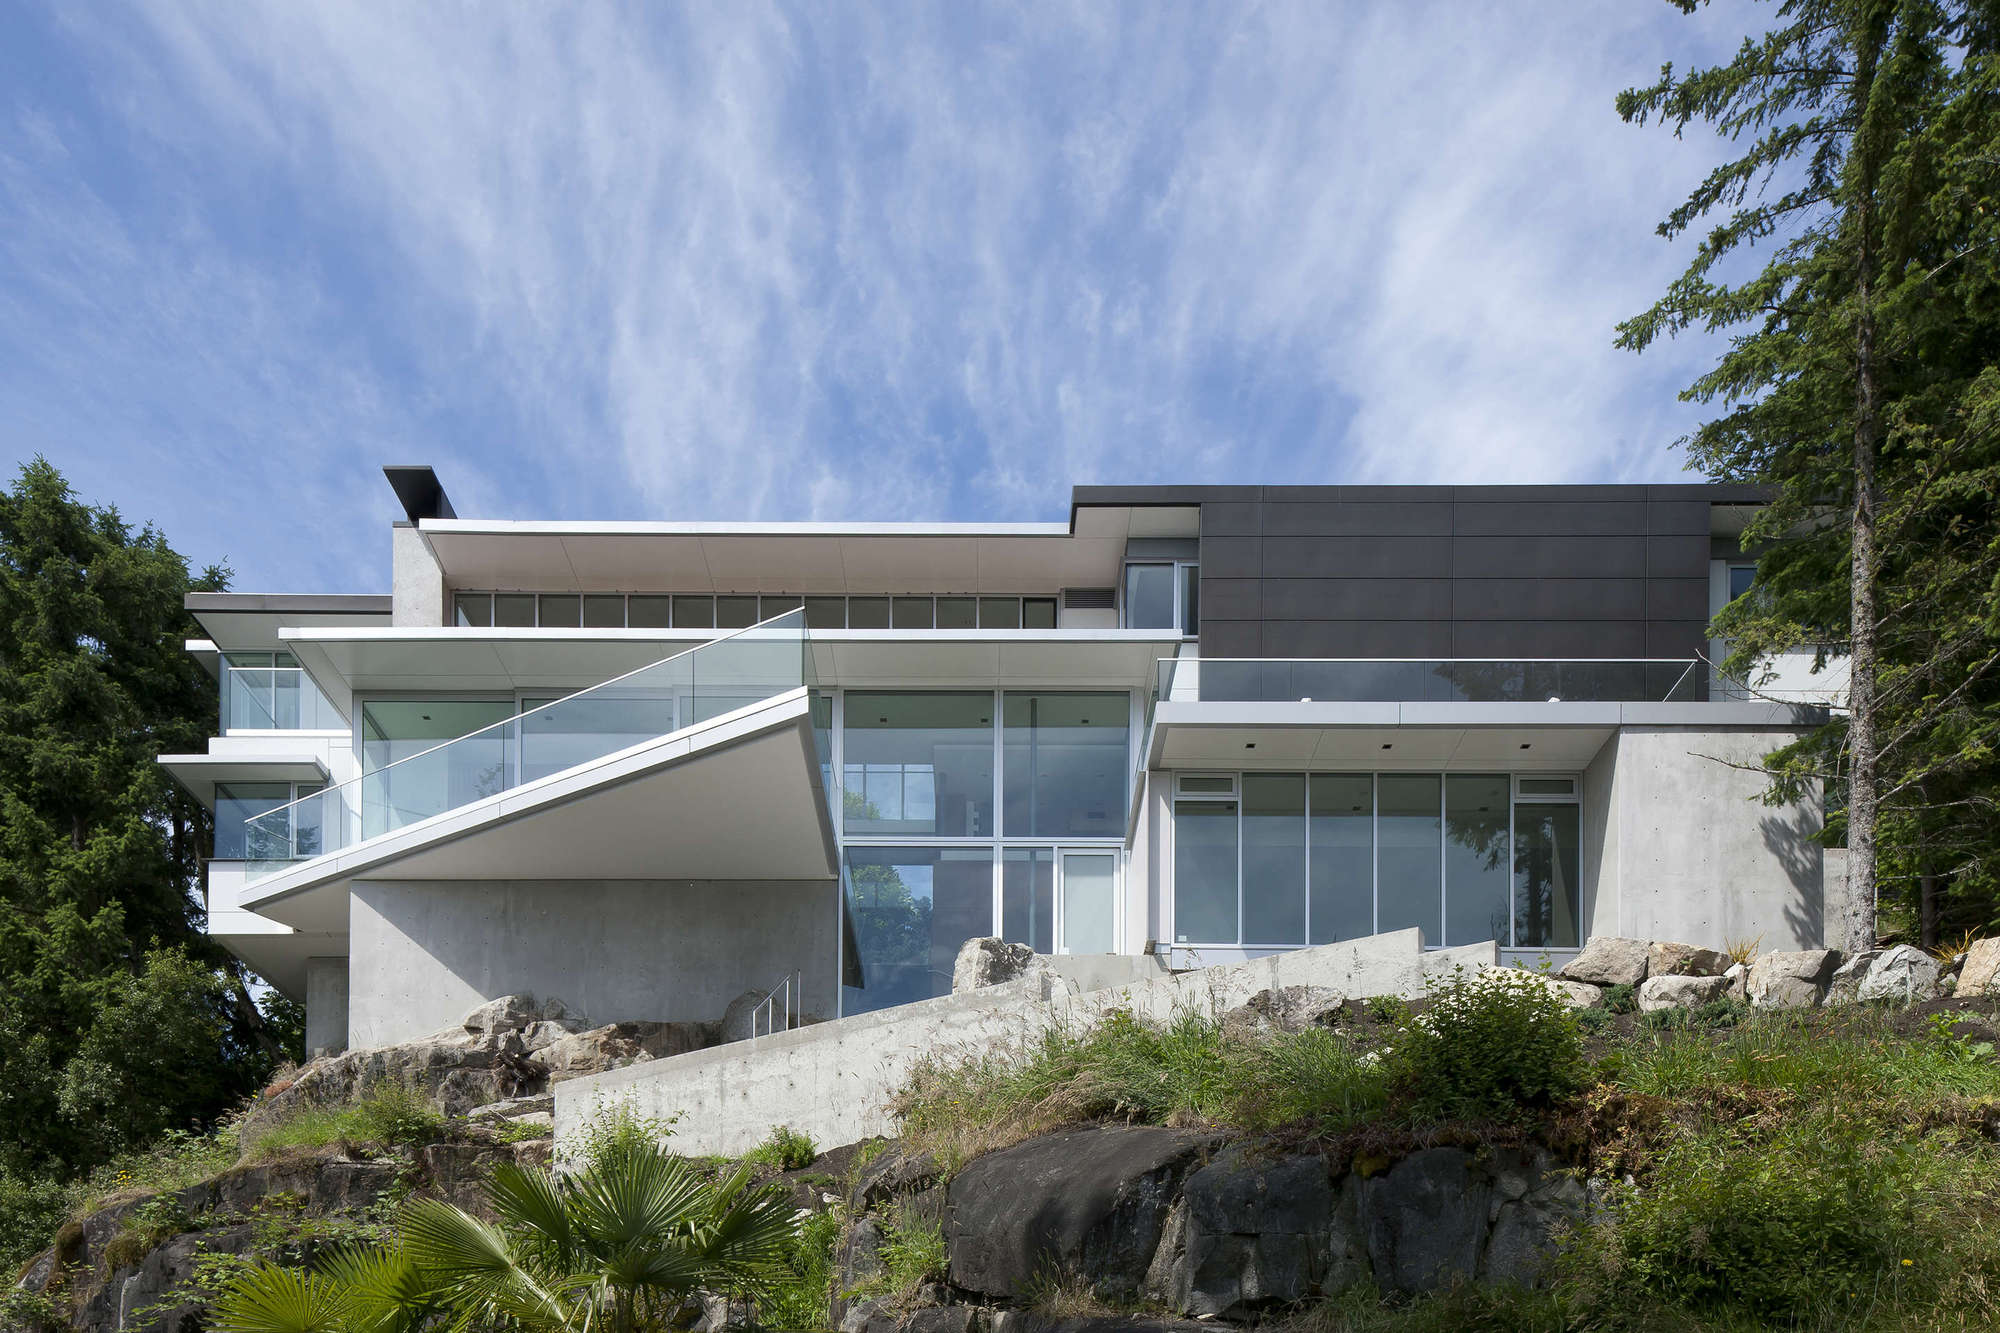 House 4249 by DGBK Architects (1)